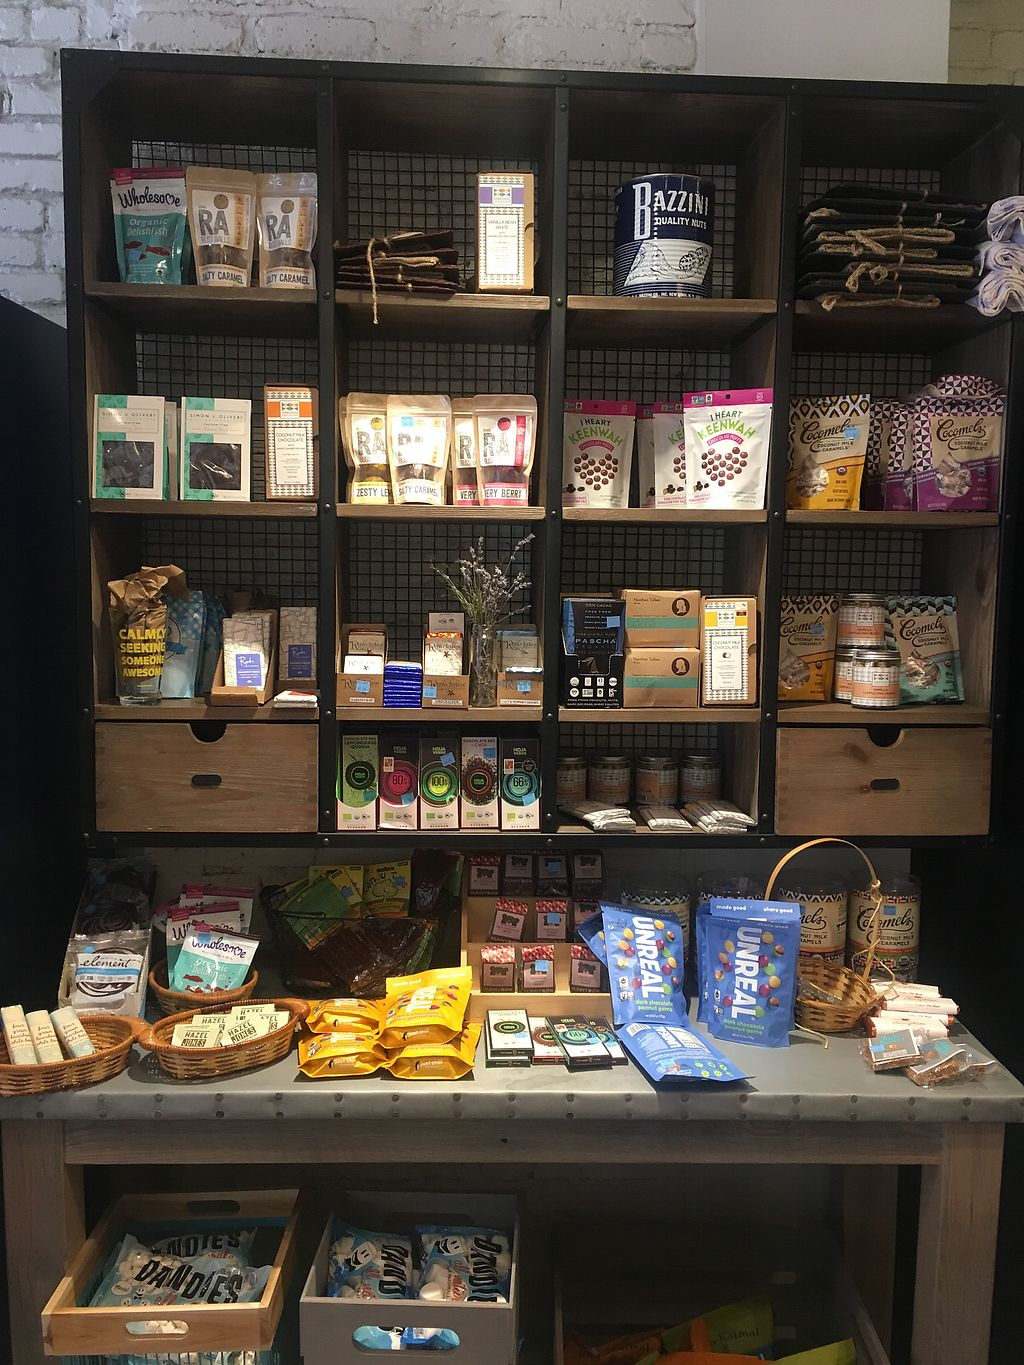 """Photo of Orchard Grocer  by <a href=""""/members/profile/770veg"""">770veg</a> <br/>mmm goodies <br/> July 20, 2017  - <a href='/contact/abuse/image/89415/282548'>Report</a>"""